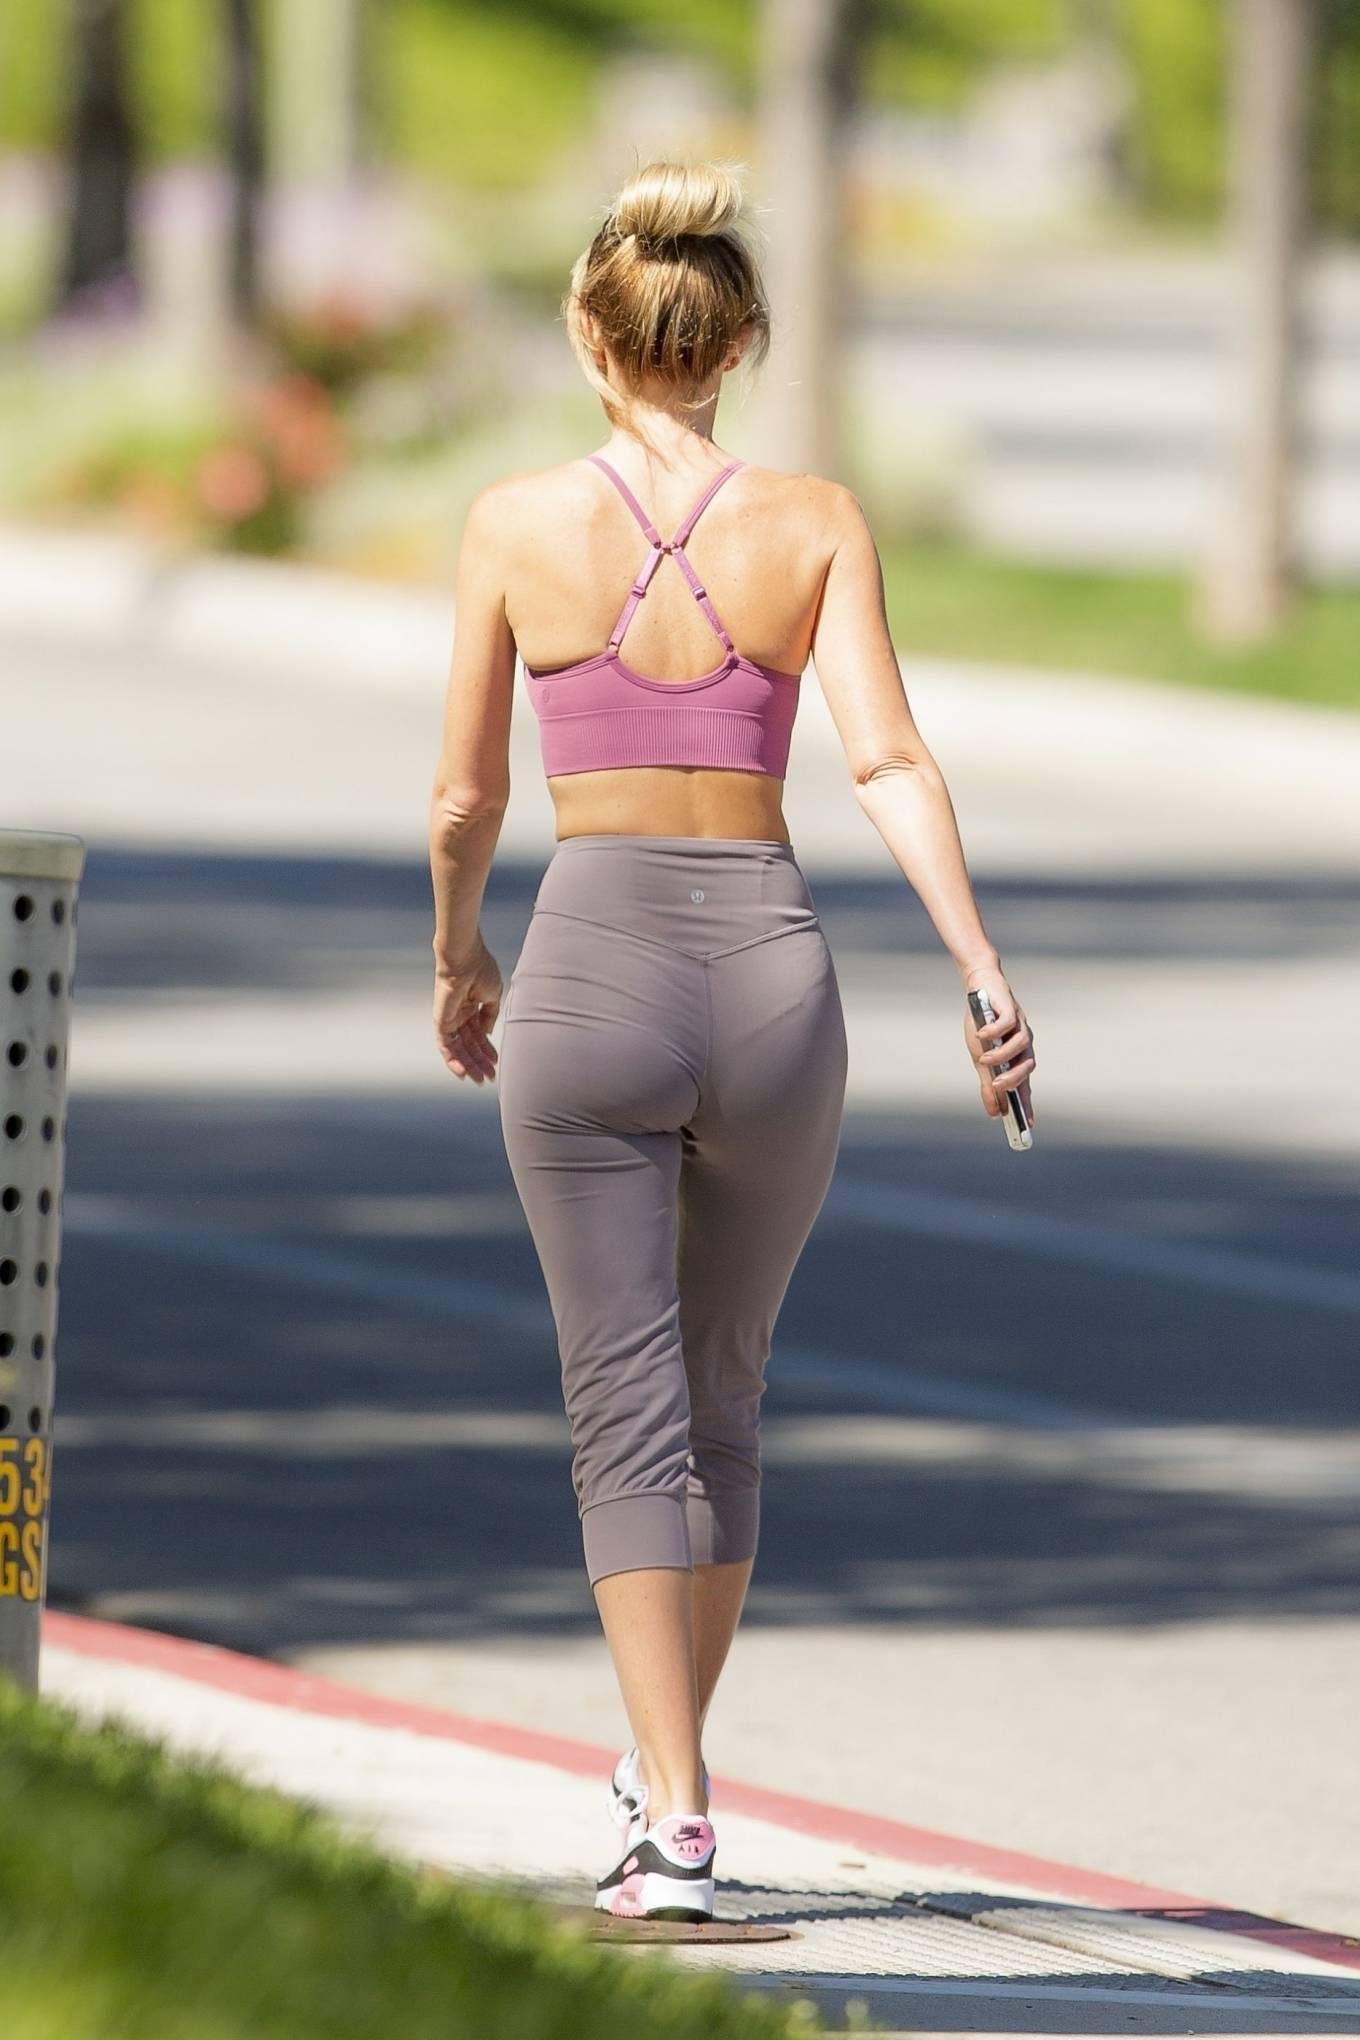 Hayley Roberts Hasselhoff 2020 : Hayley Roberts Hasselhoff in Tights and Sports Bra – Out in Calabasas-10